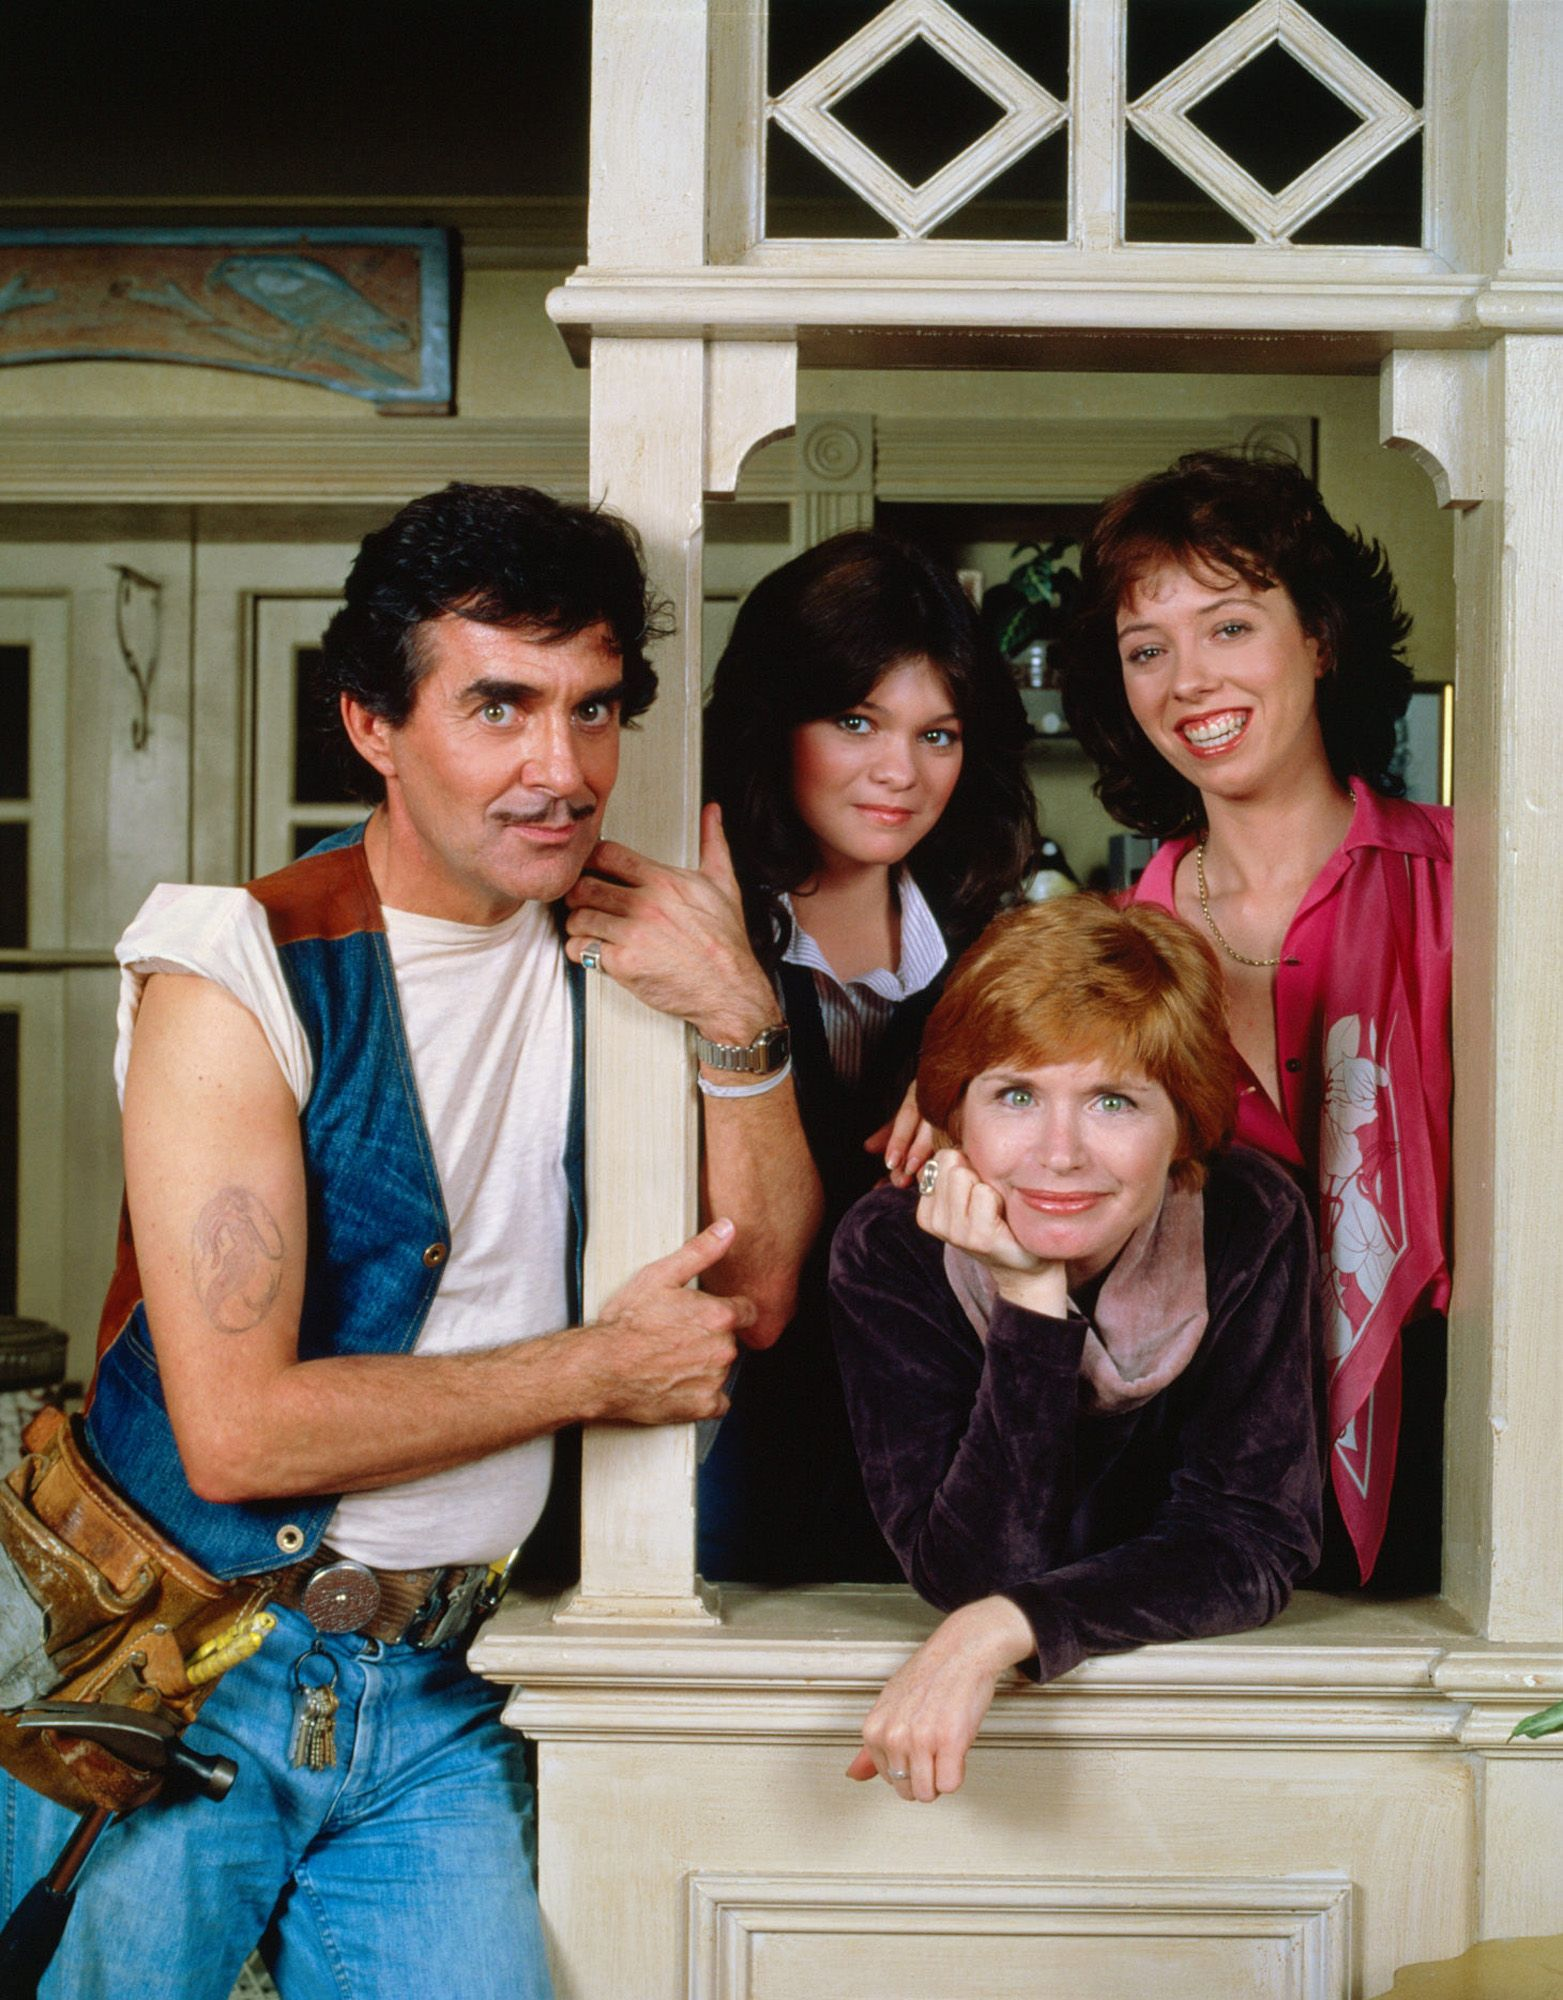 Pat Harrington Jr Schneider Of Tv S One Day At A Time Dies At 86 Pat Harrington Jr Valerie Bertinelli 70s Tv Shows